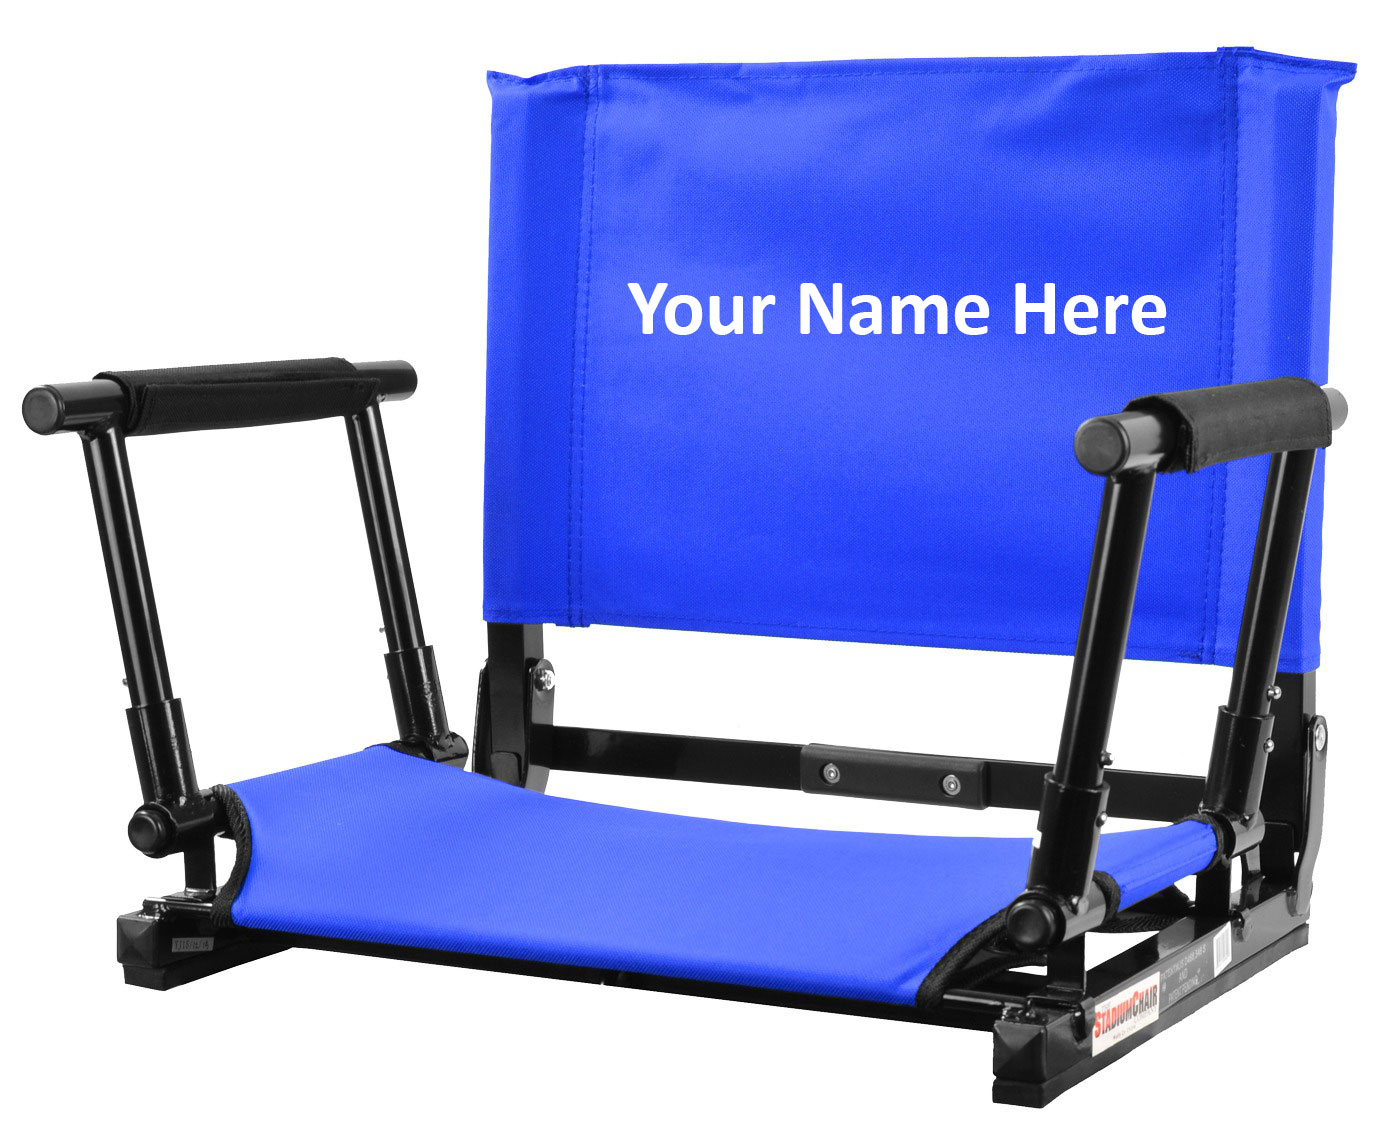 IMPRINTED Personalized NEW Stadium Chair Gamechanger Bleacher Seat with Optional Arms  sc 1 st  Everywhere Chair & IMPRINTED Personalized NEW Stadium Chair Gamechanger Bleacher Seat ...